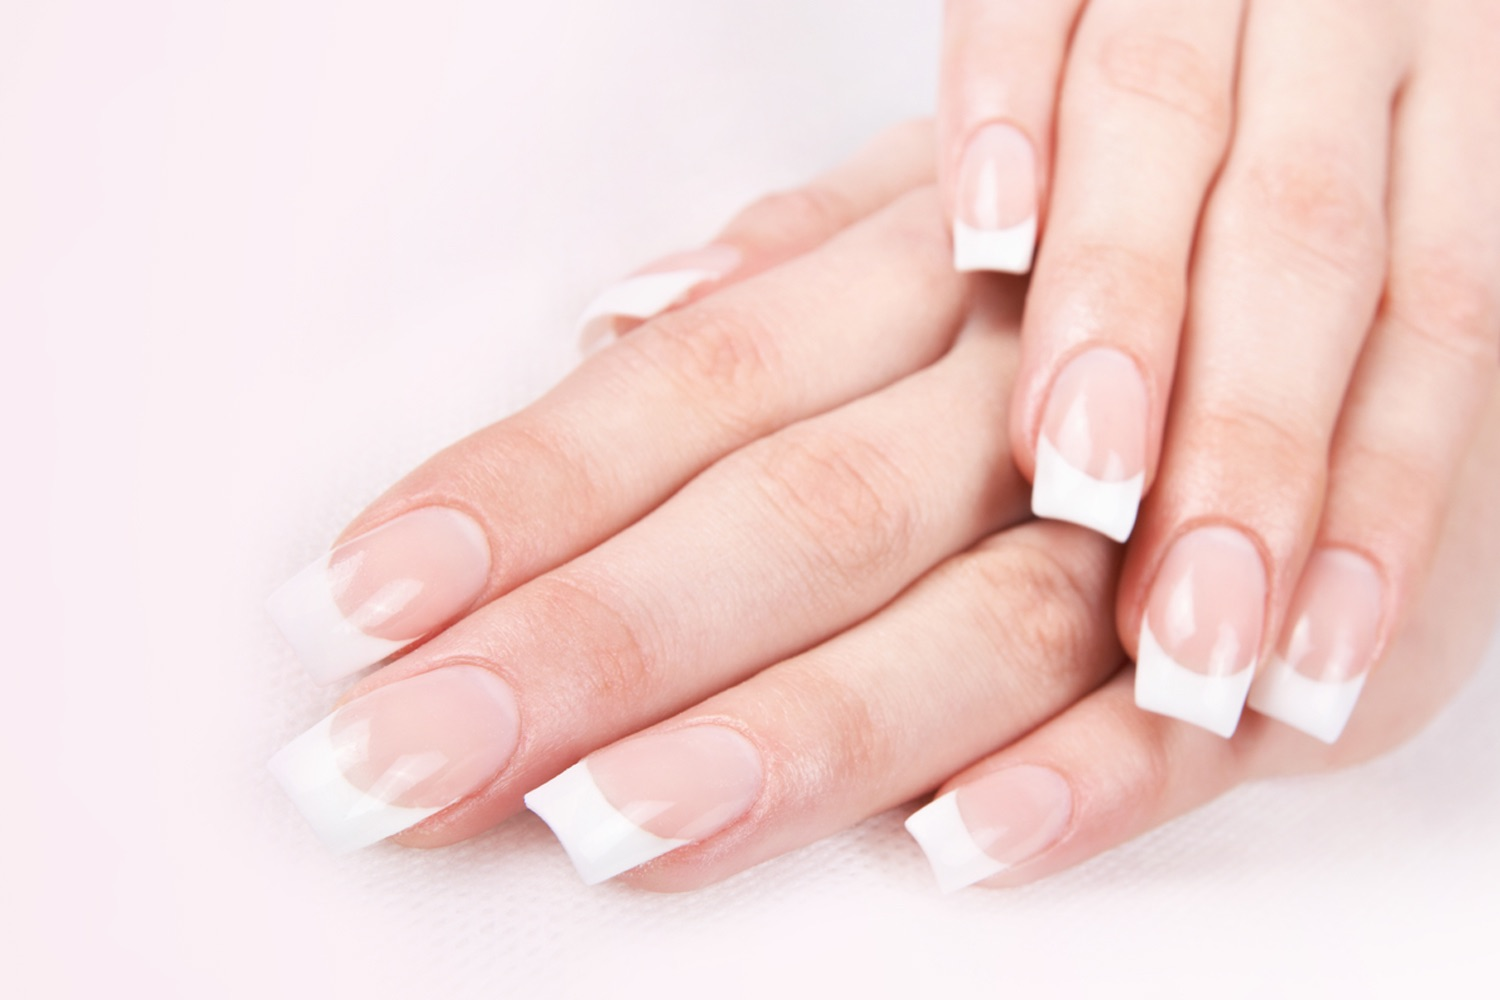 Acrylic-Nail-Extensions-MOBILE-BANNER